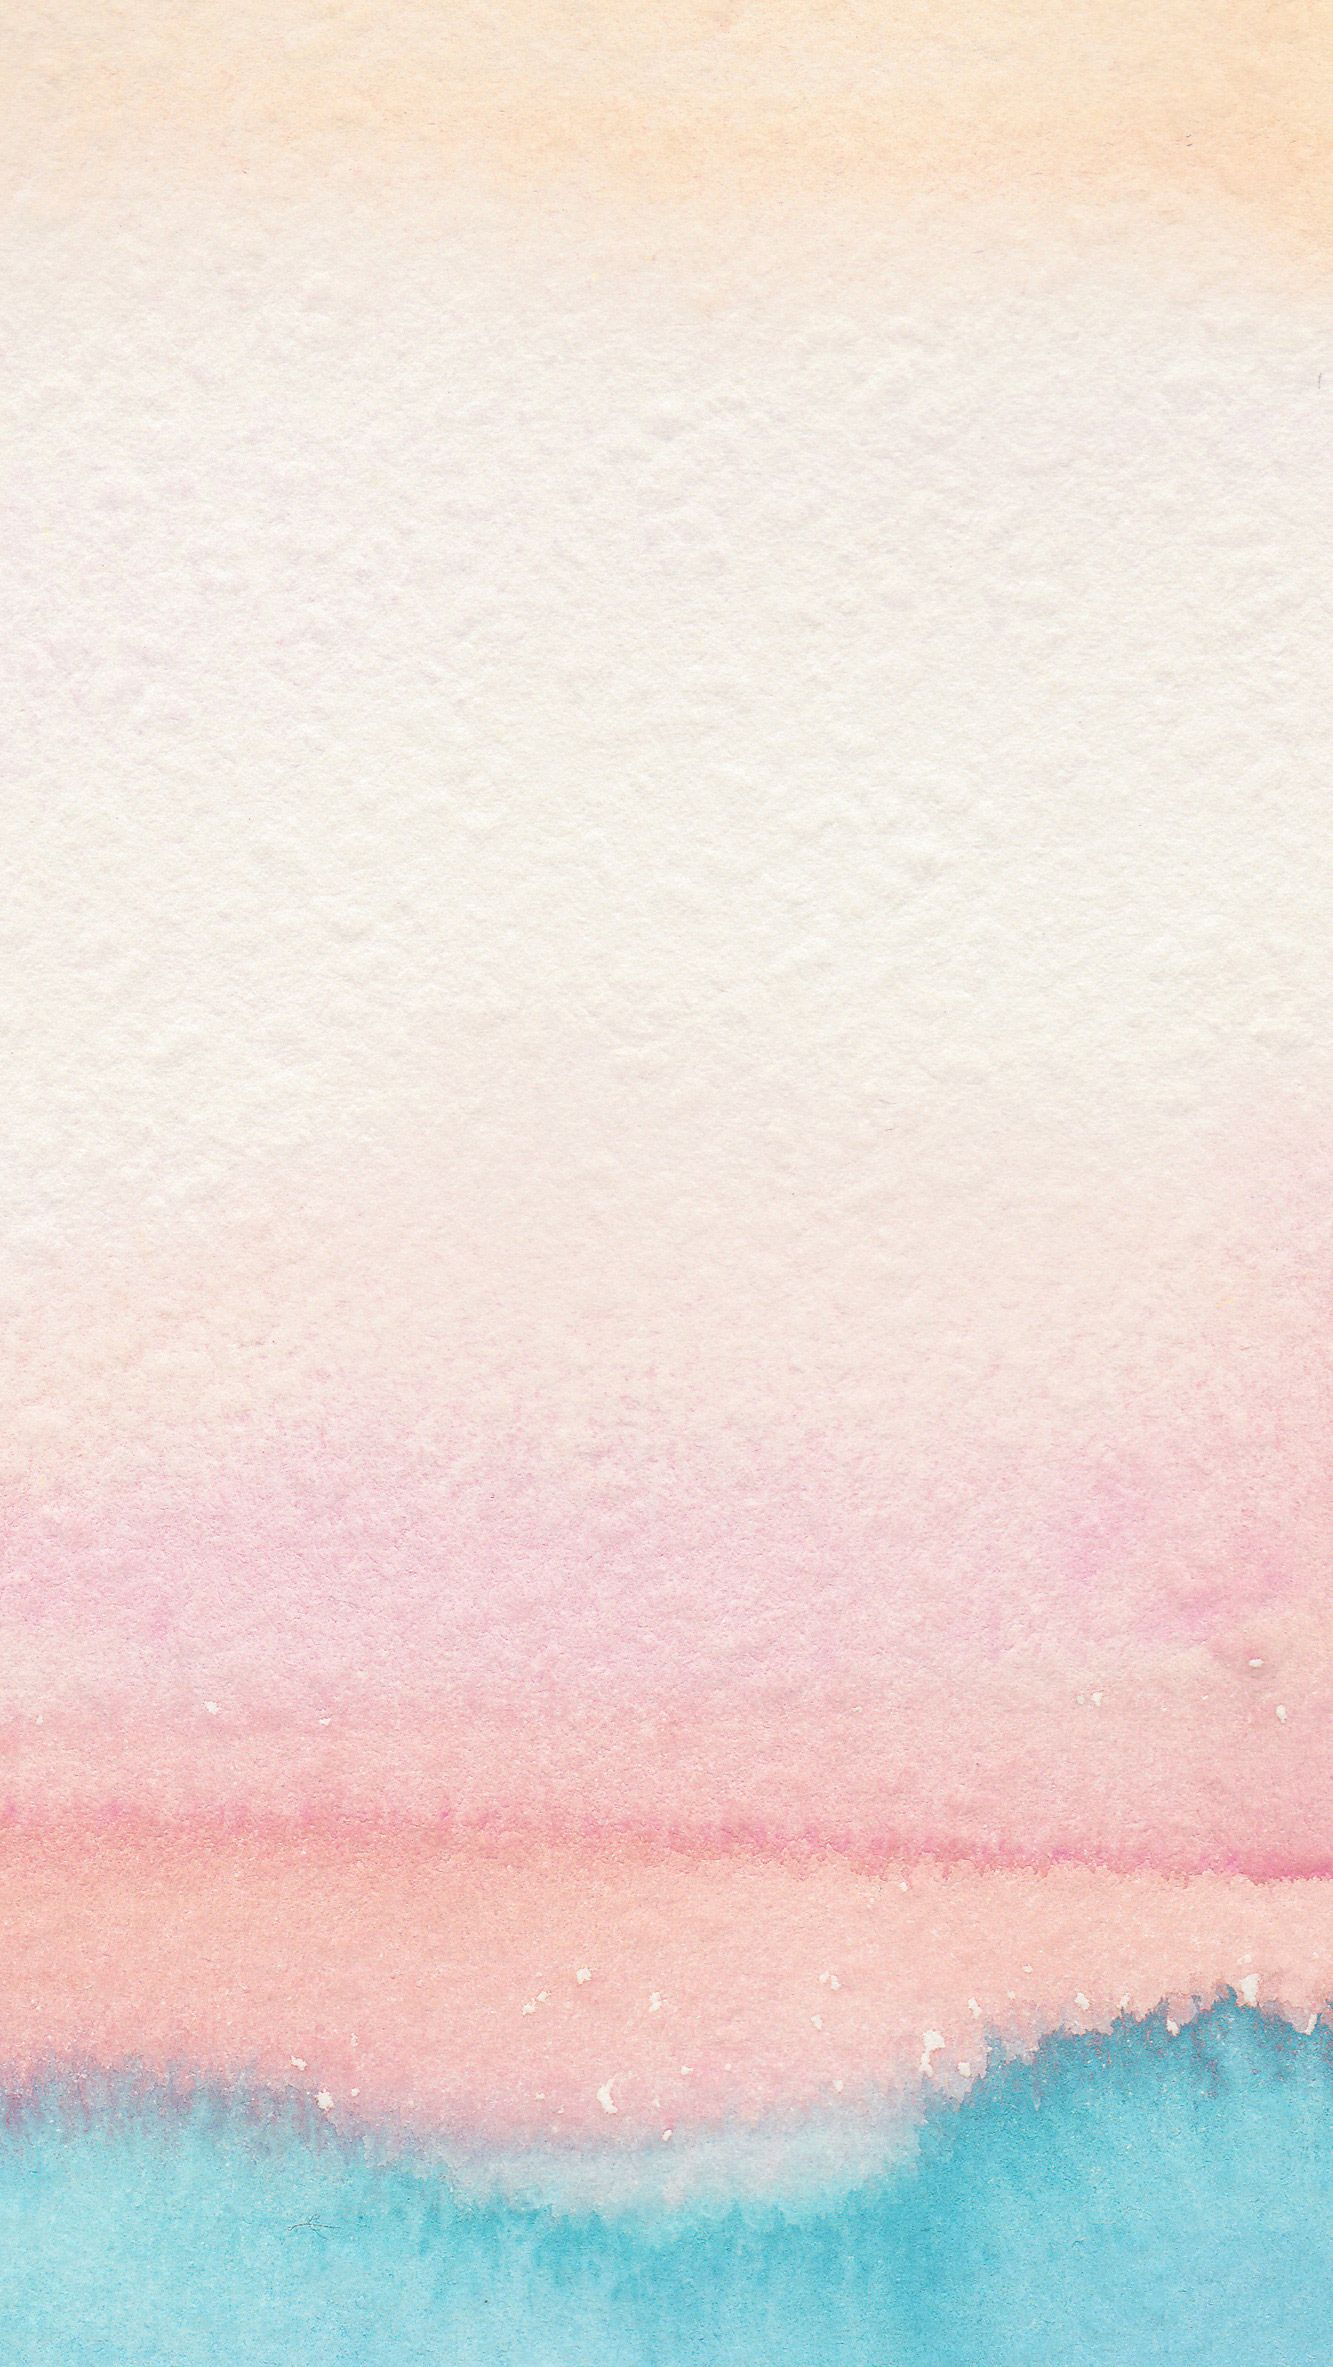 Wallpaper iphone pastel hd - Find This Pin And More On Wallpaper By Veronikagi Pastel Wallpaper For Iphone